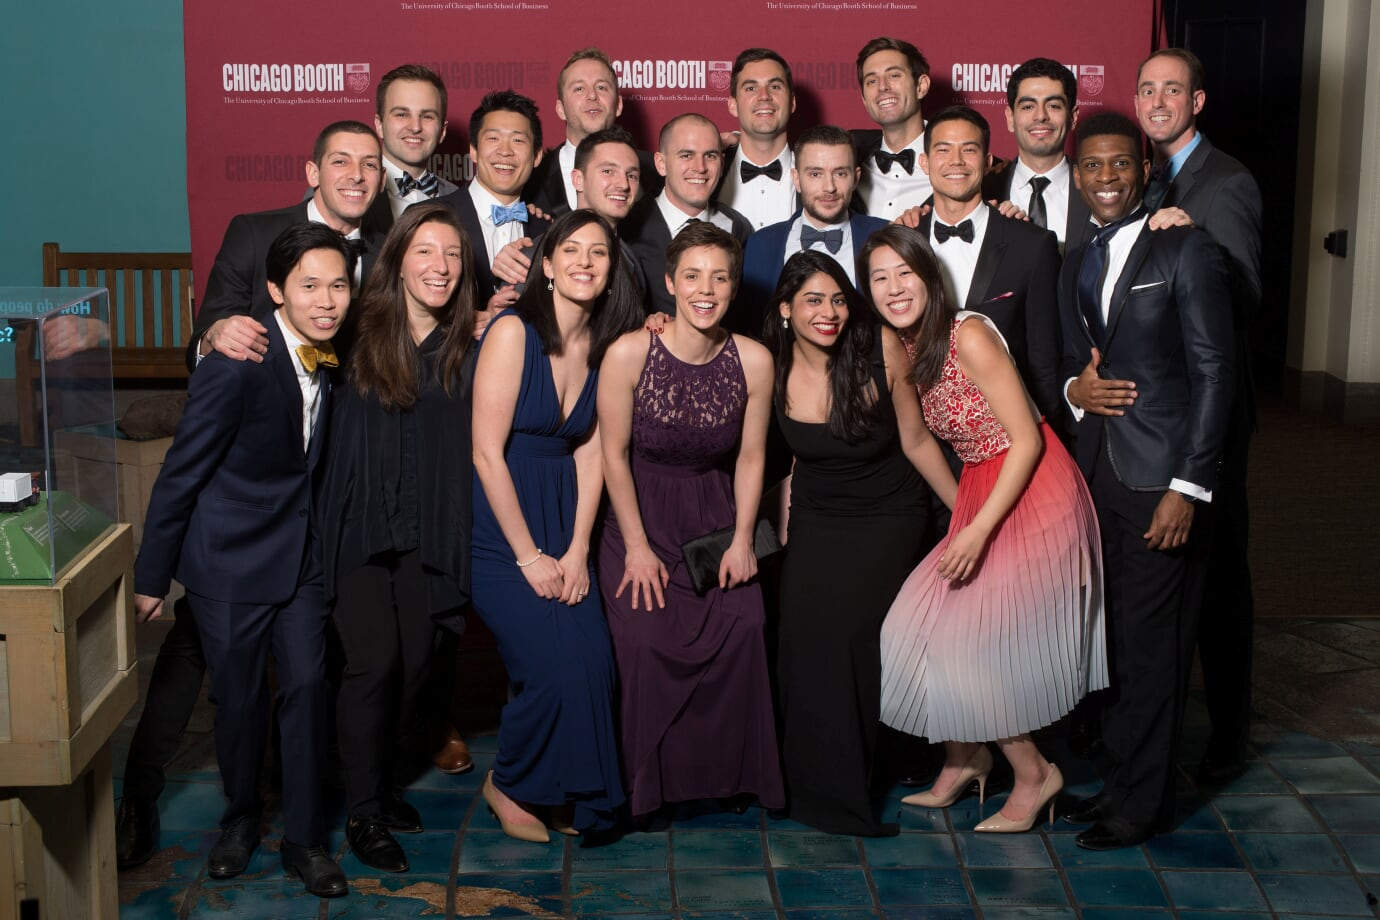 Boothies cleaned up nicely for an evening at the Field Museum of Natural History last year